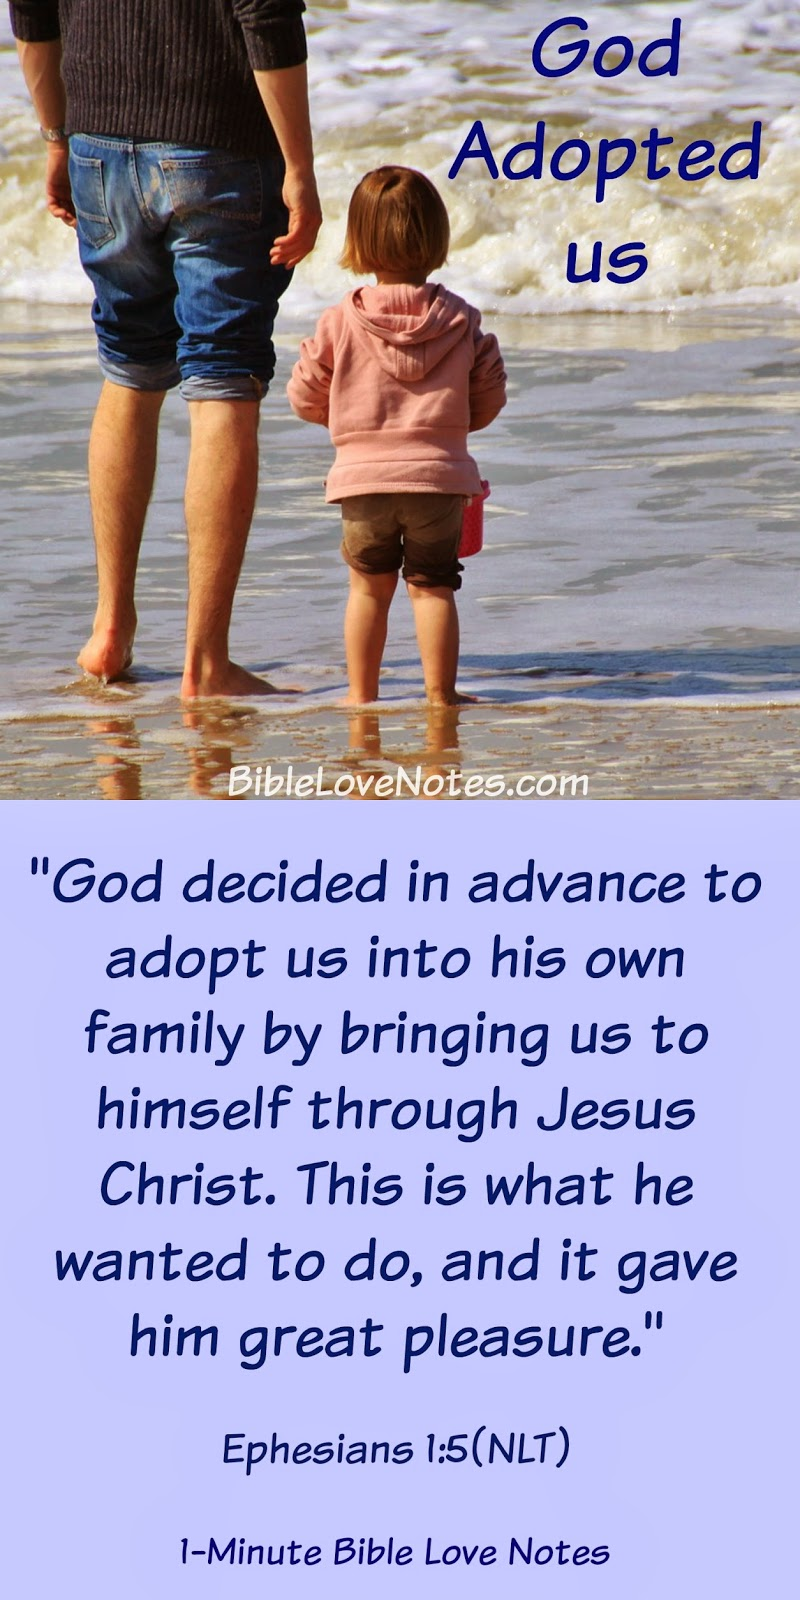 Ephesians 1:5, Adopted by God, God the Father